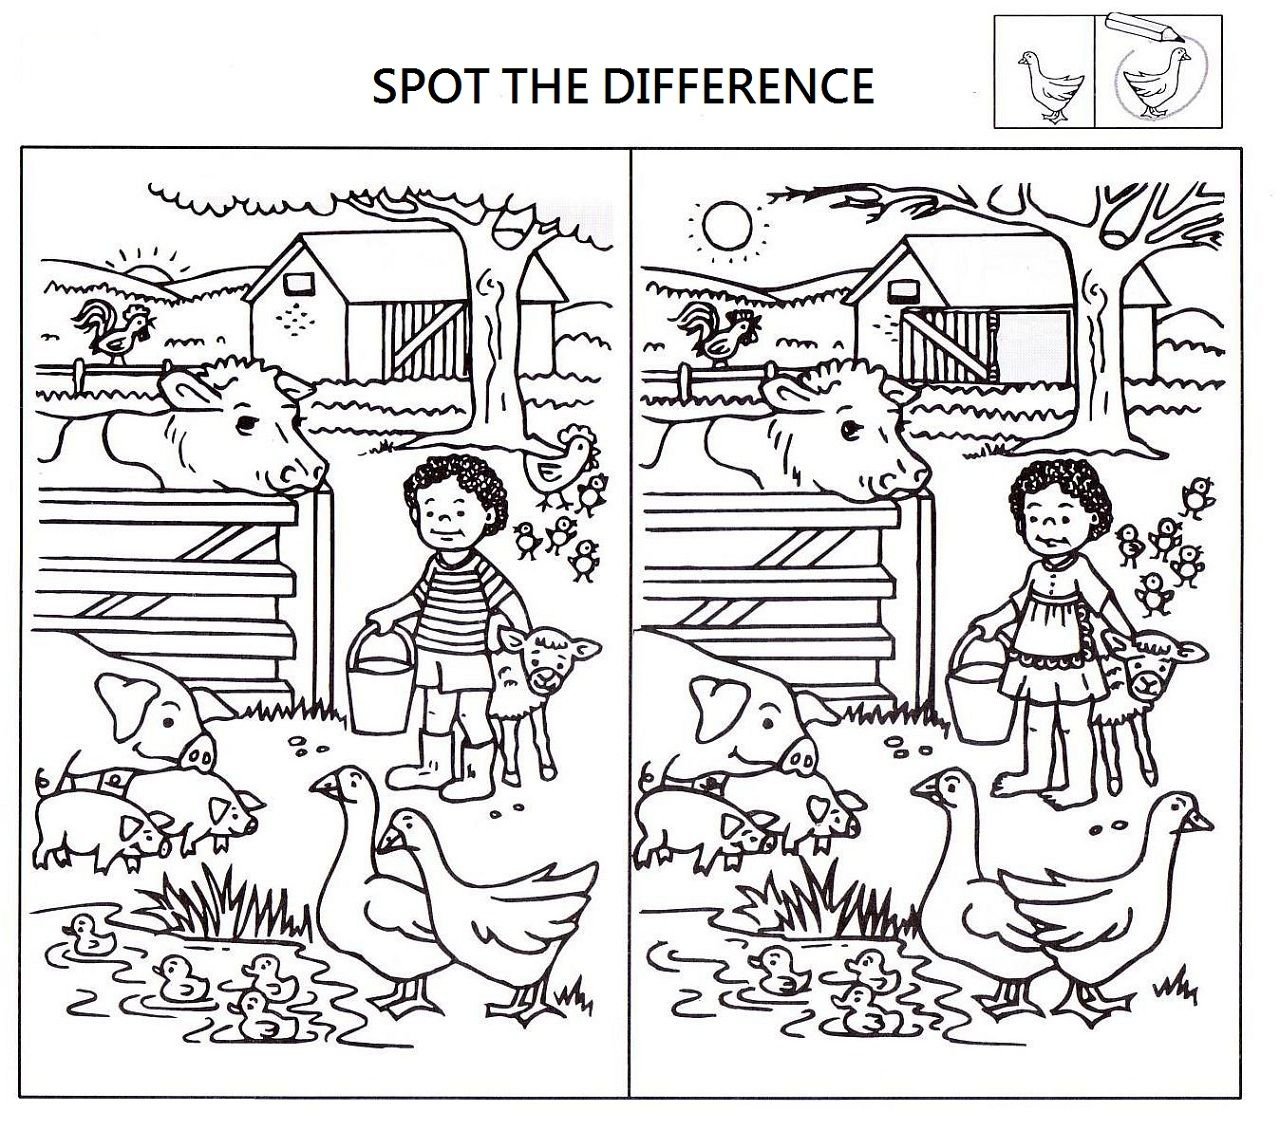 Spot The Difference Worksheets For Kids | Worksheets For